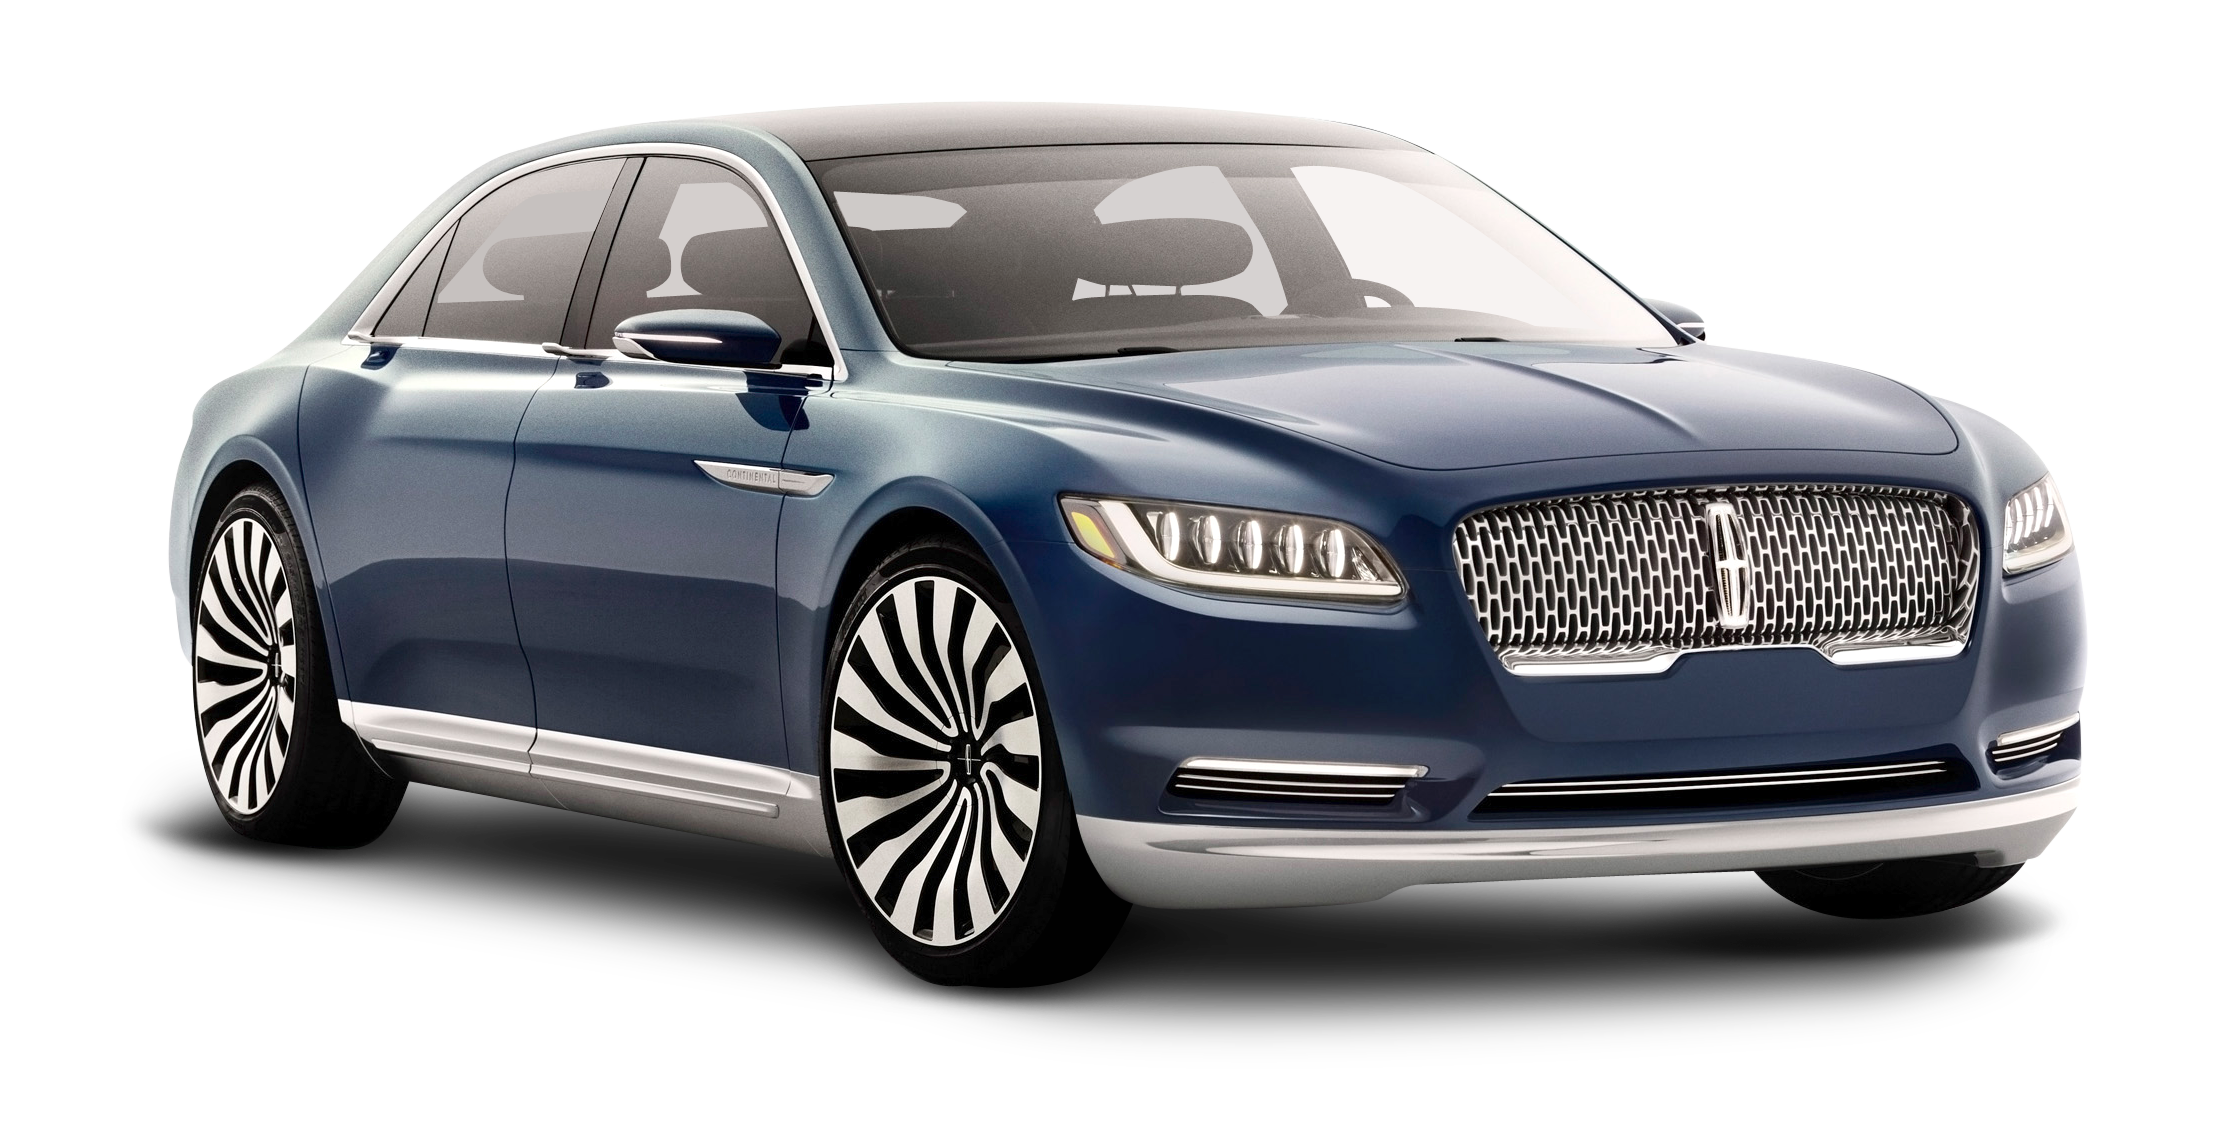 Lincoln Continental Blue Car PNG Image - PurePNG | Free ...